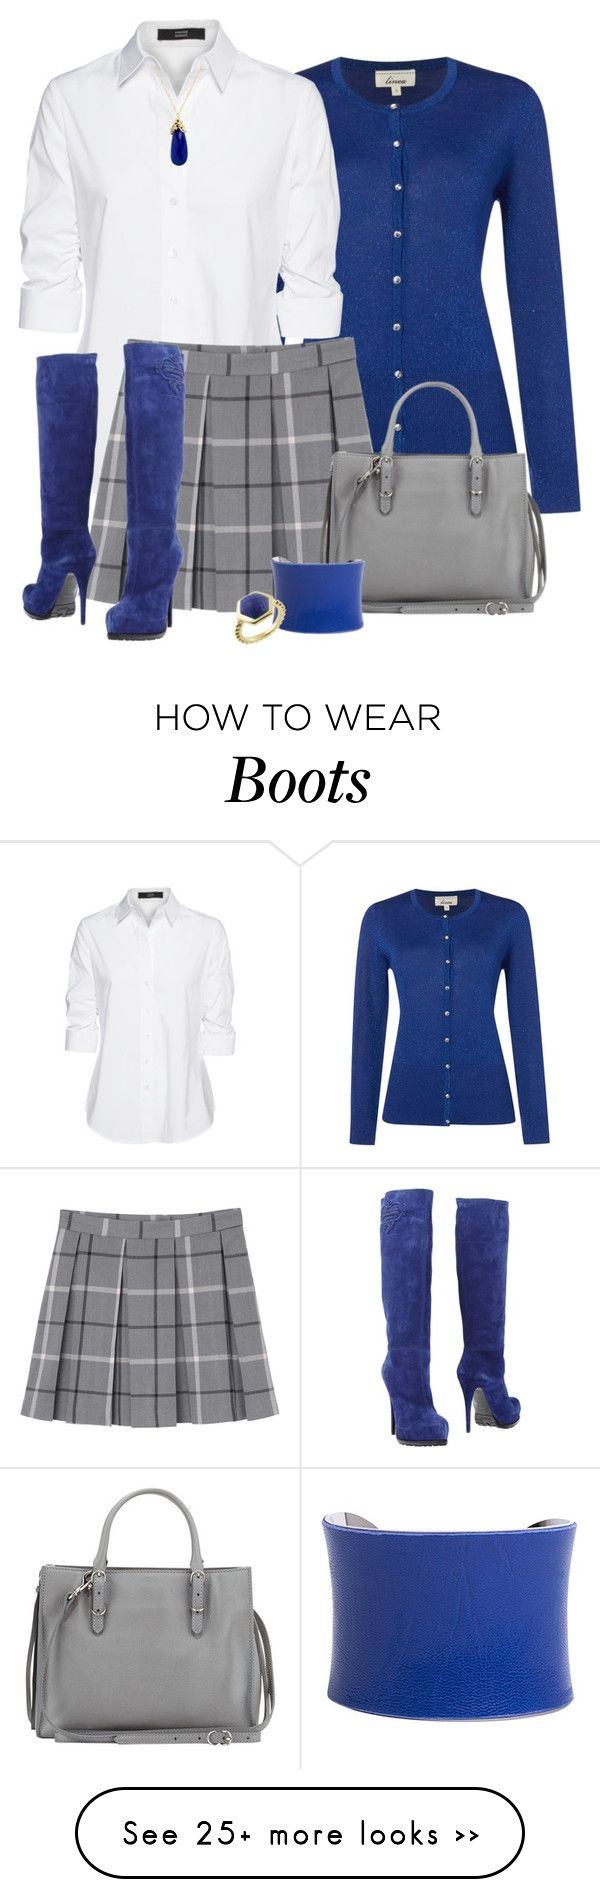 """""""Blue boots"""" by danigrll on Polyvore featuring Linea, Steffen Schraut, Monki, Sebastian Professional, Balenciaga, Indulgems, UNEARTHED and Trisori"""